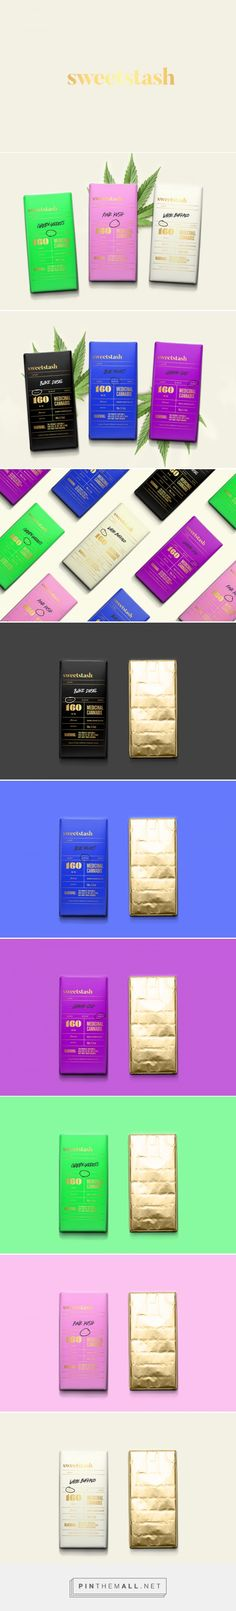 Branding and packaging design for SweetStash on Behance by Sarah Gwan Toronto, Ontario curated by Packaging Diva PD. Colorful concept packaging for medical cannabis. Clever name.